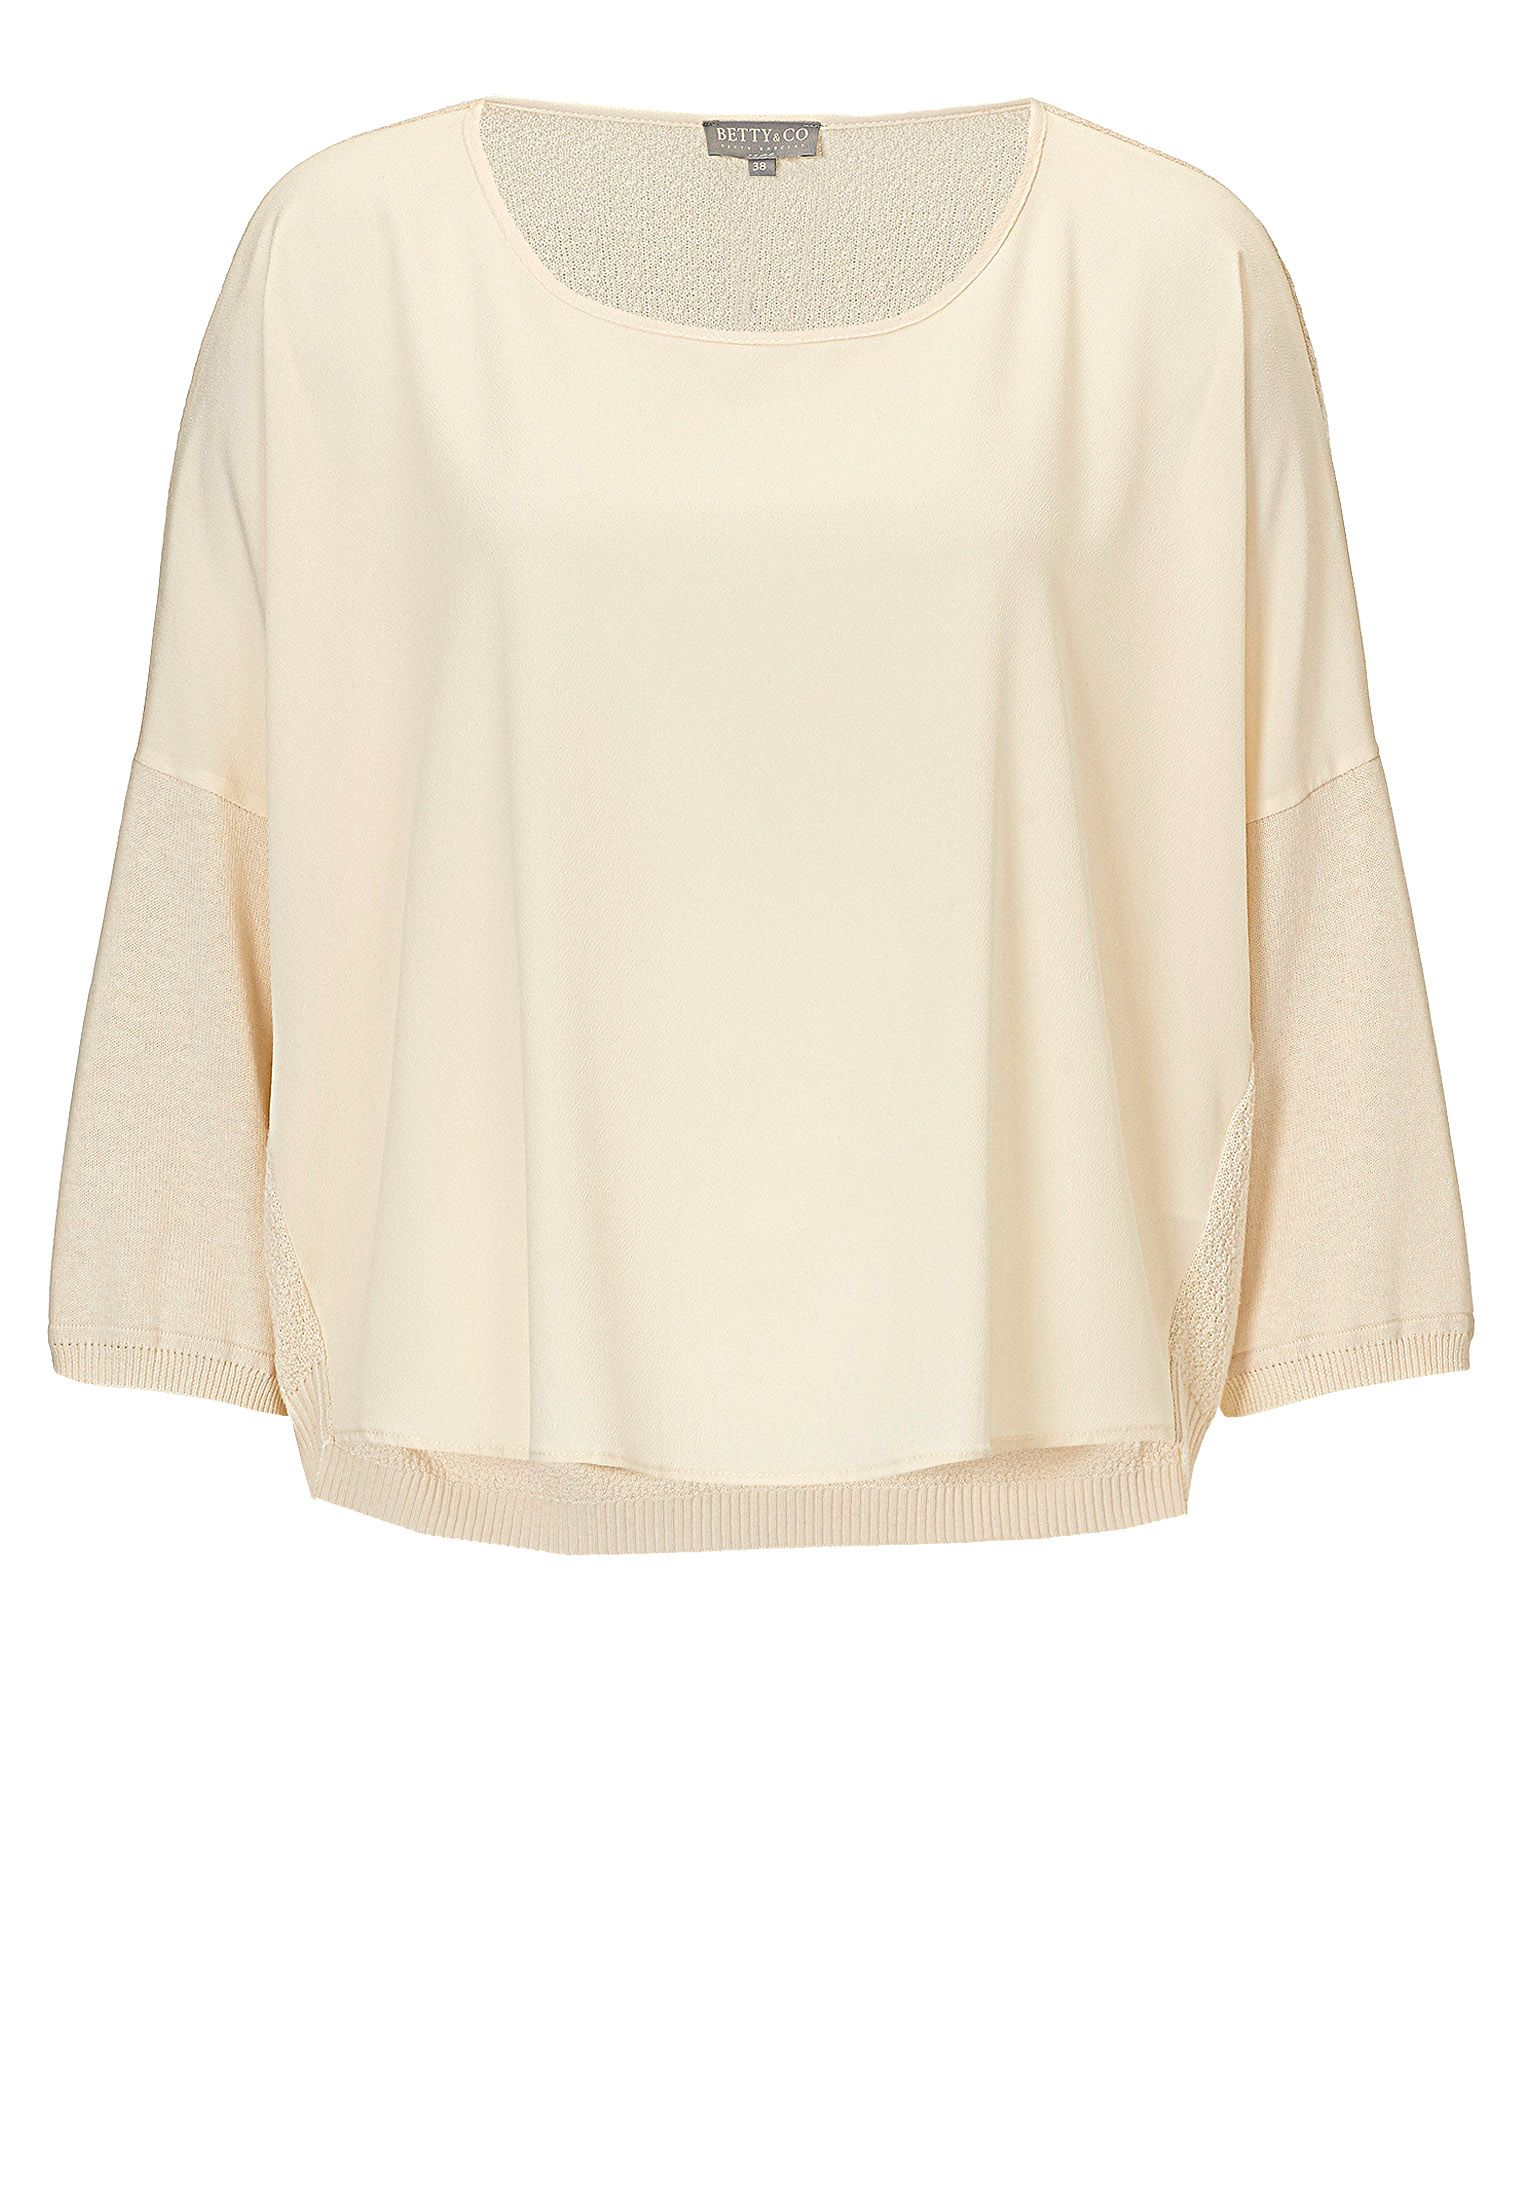 Betty & Co. Oversized top, Cream